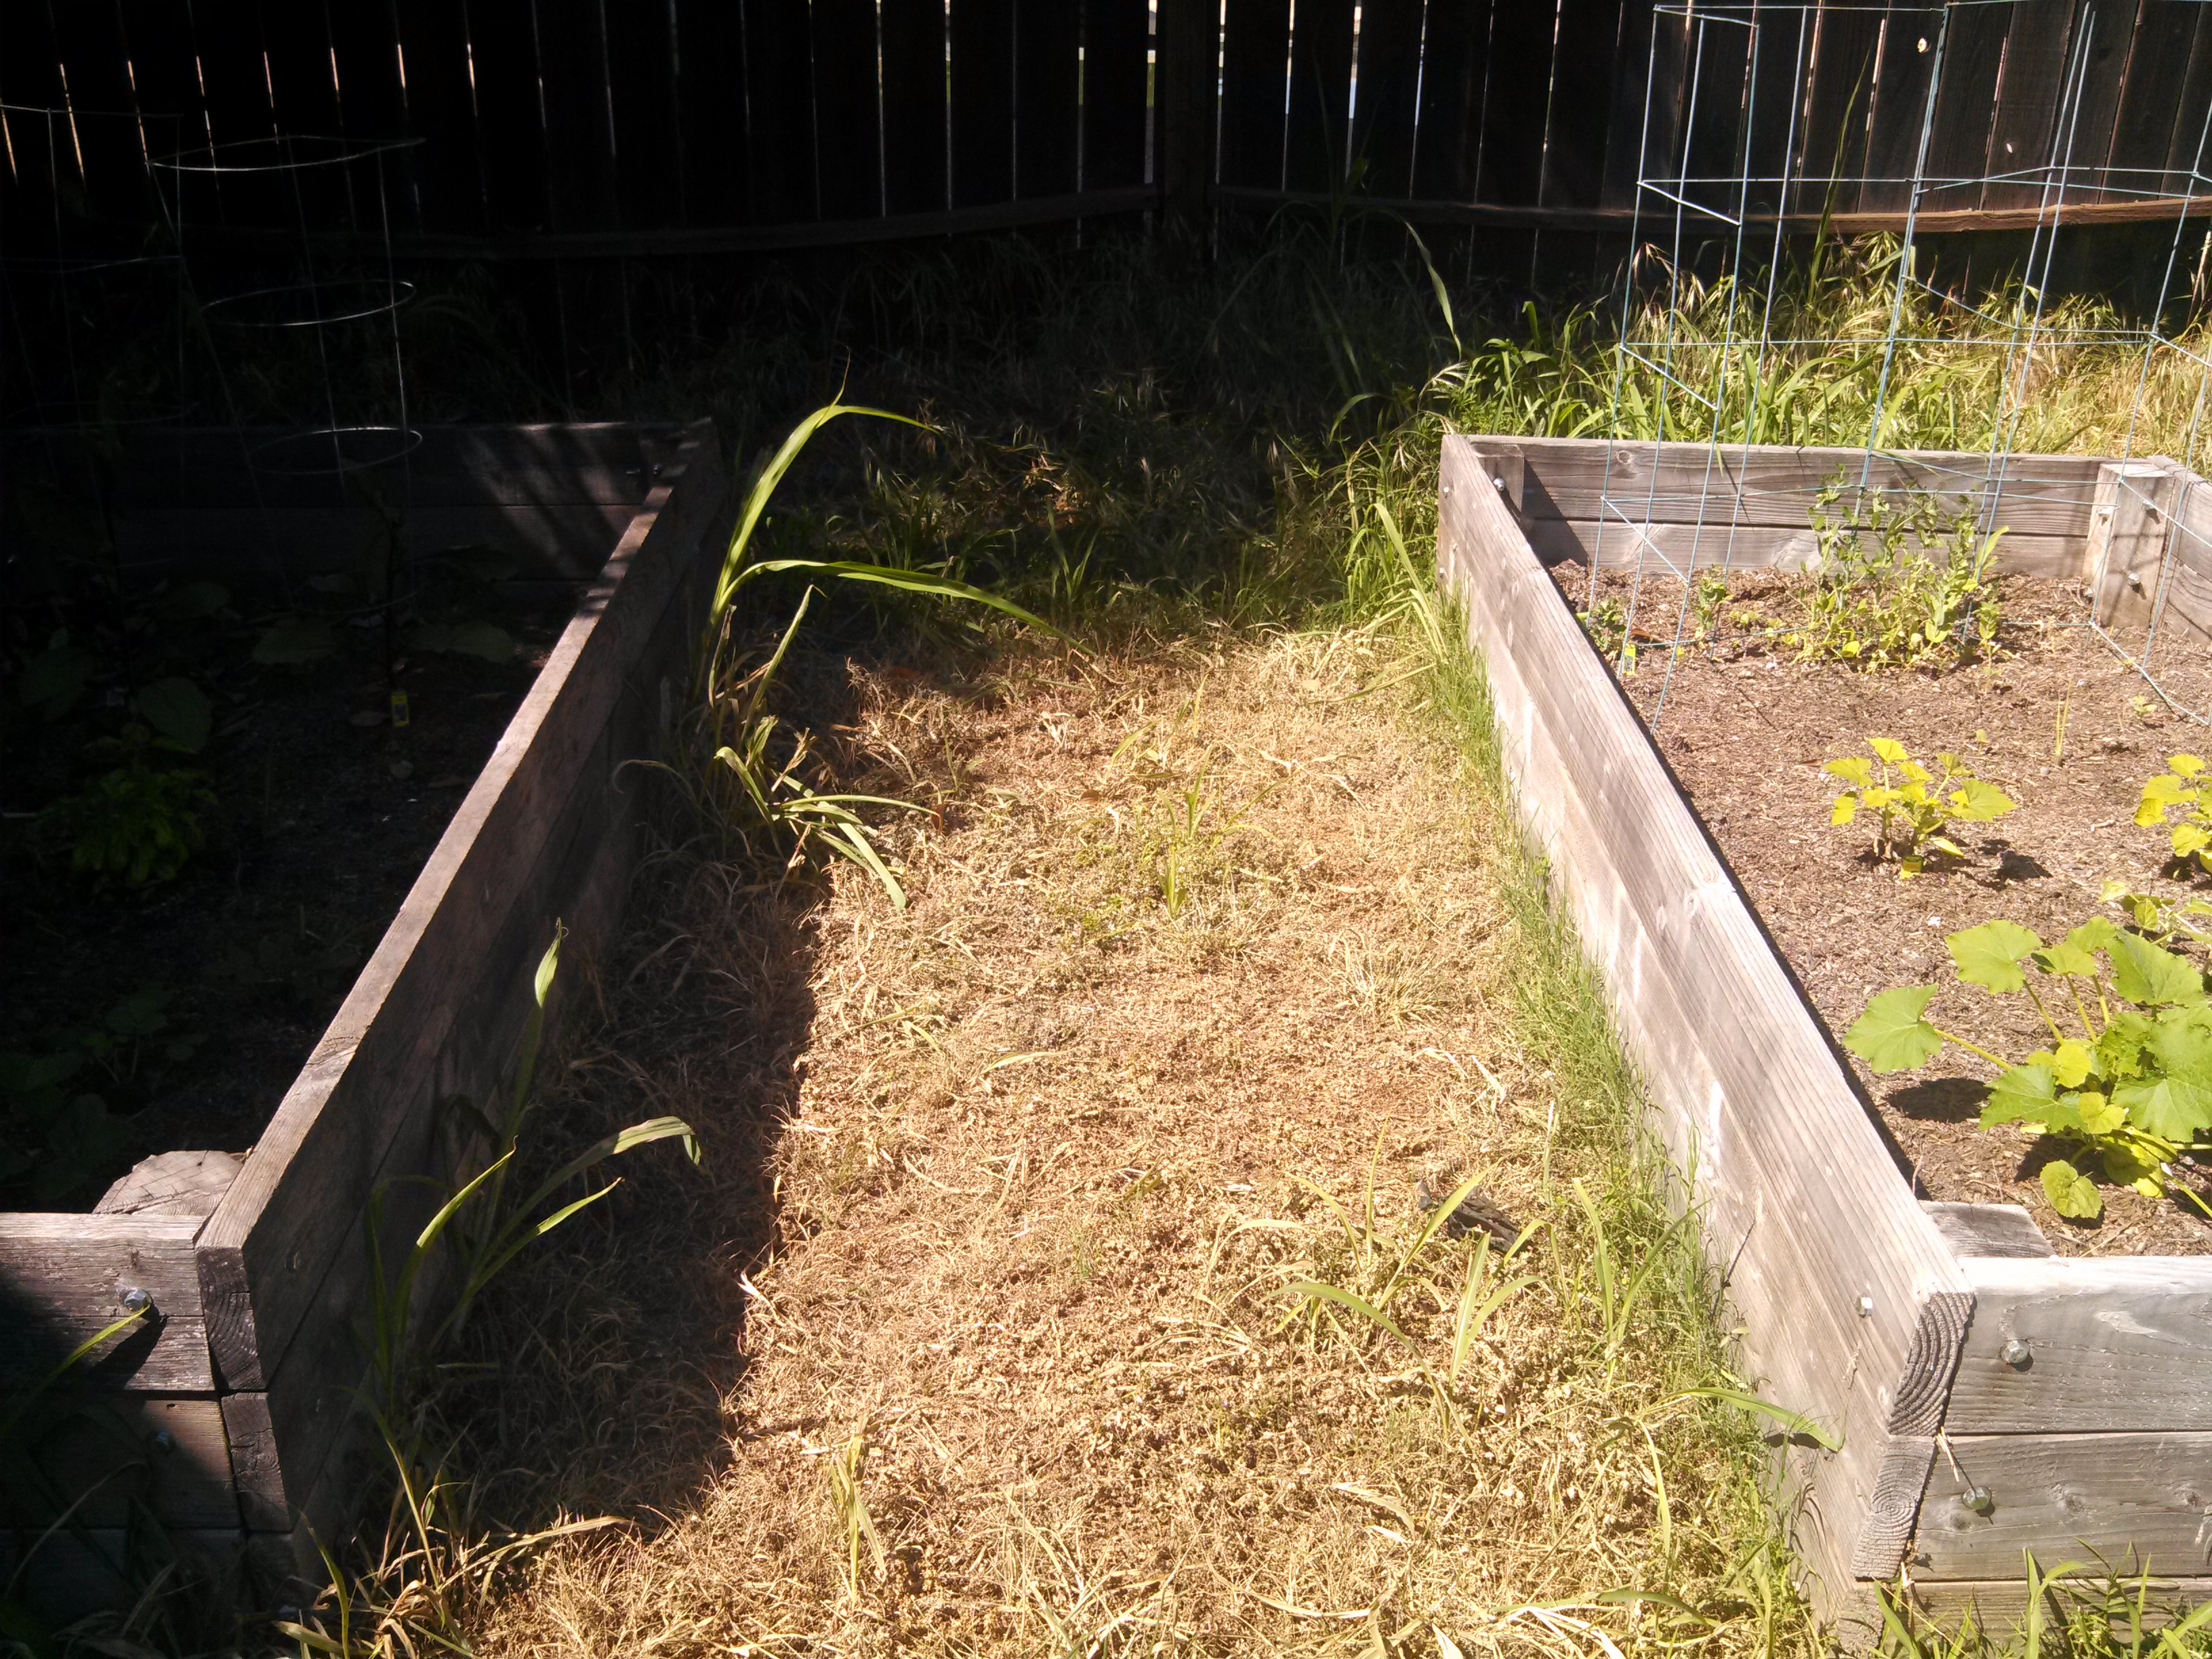 Garden after using vinegar, salt and soap mixture to kill weeds